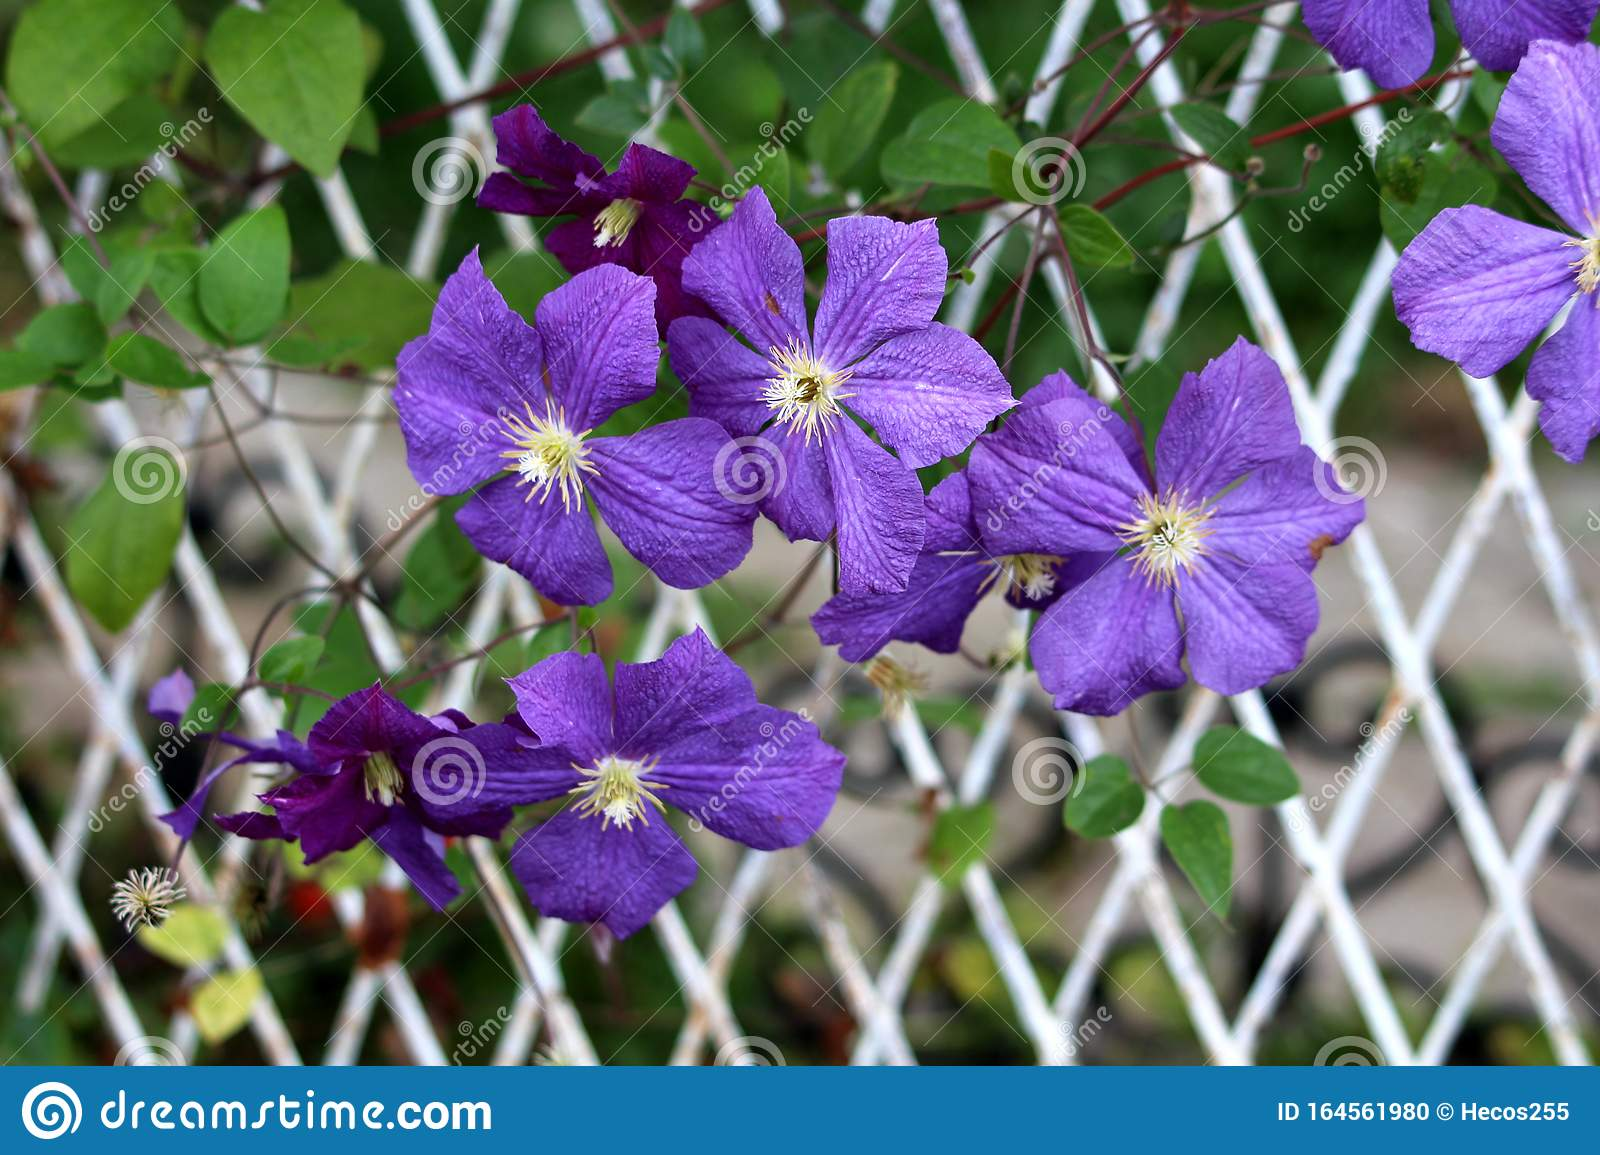 Clematis Or Leather Flower Easy Care Perennial Vine Plants